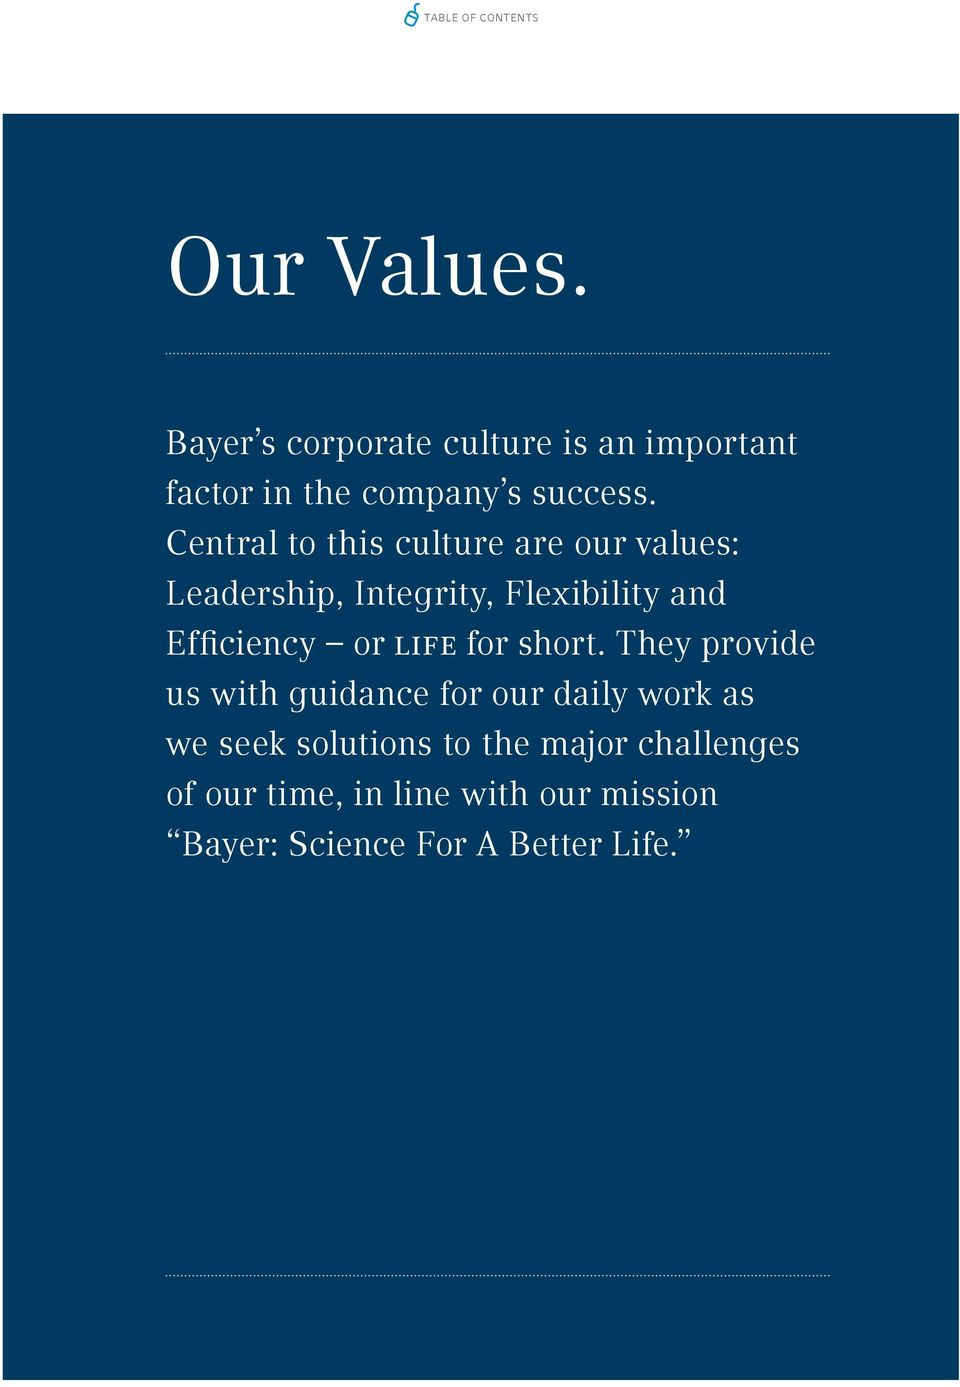 Central to this culture are our values: Leadership, Integrity, Flexibility and Efficiency or